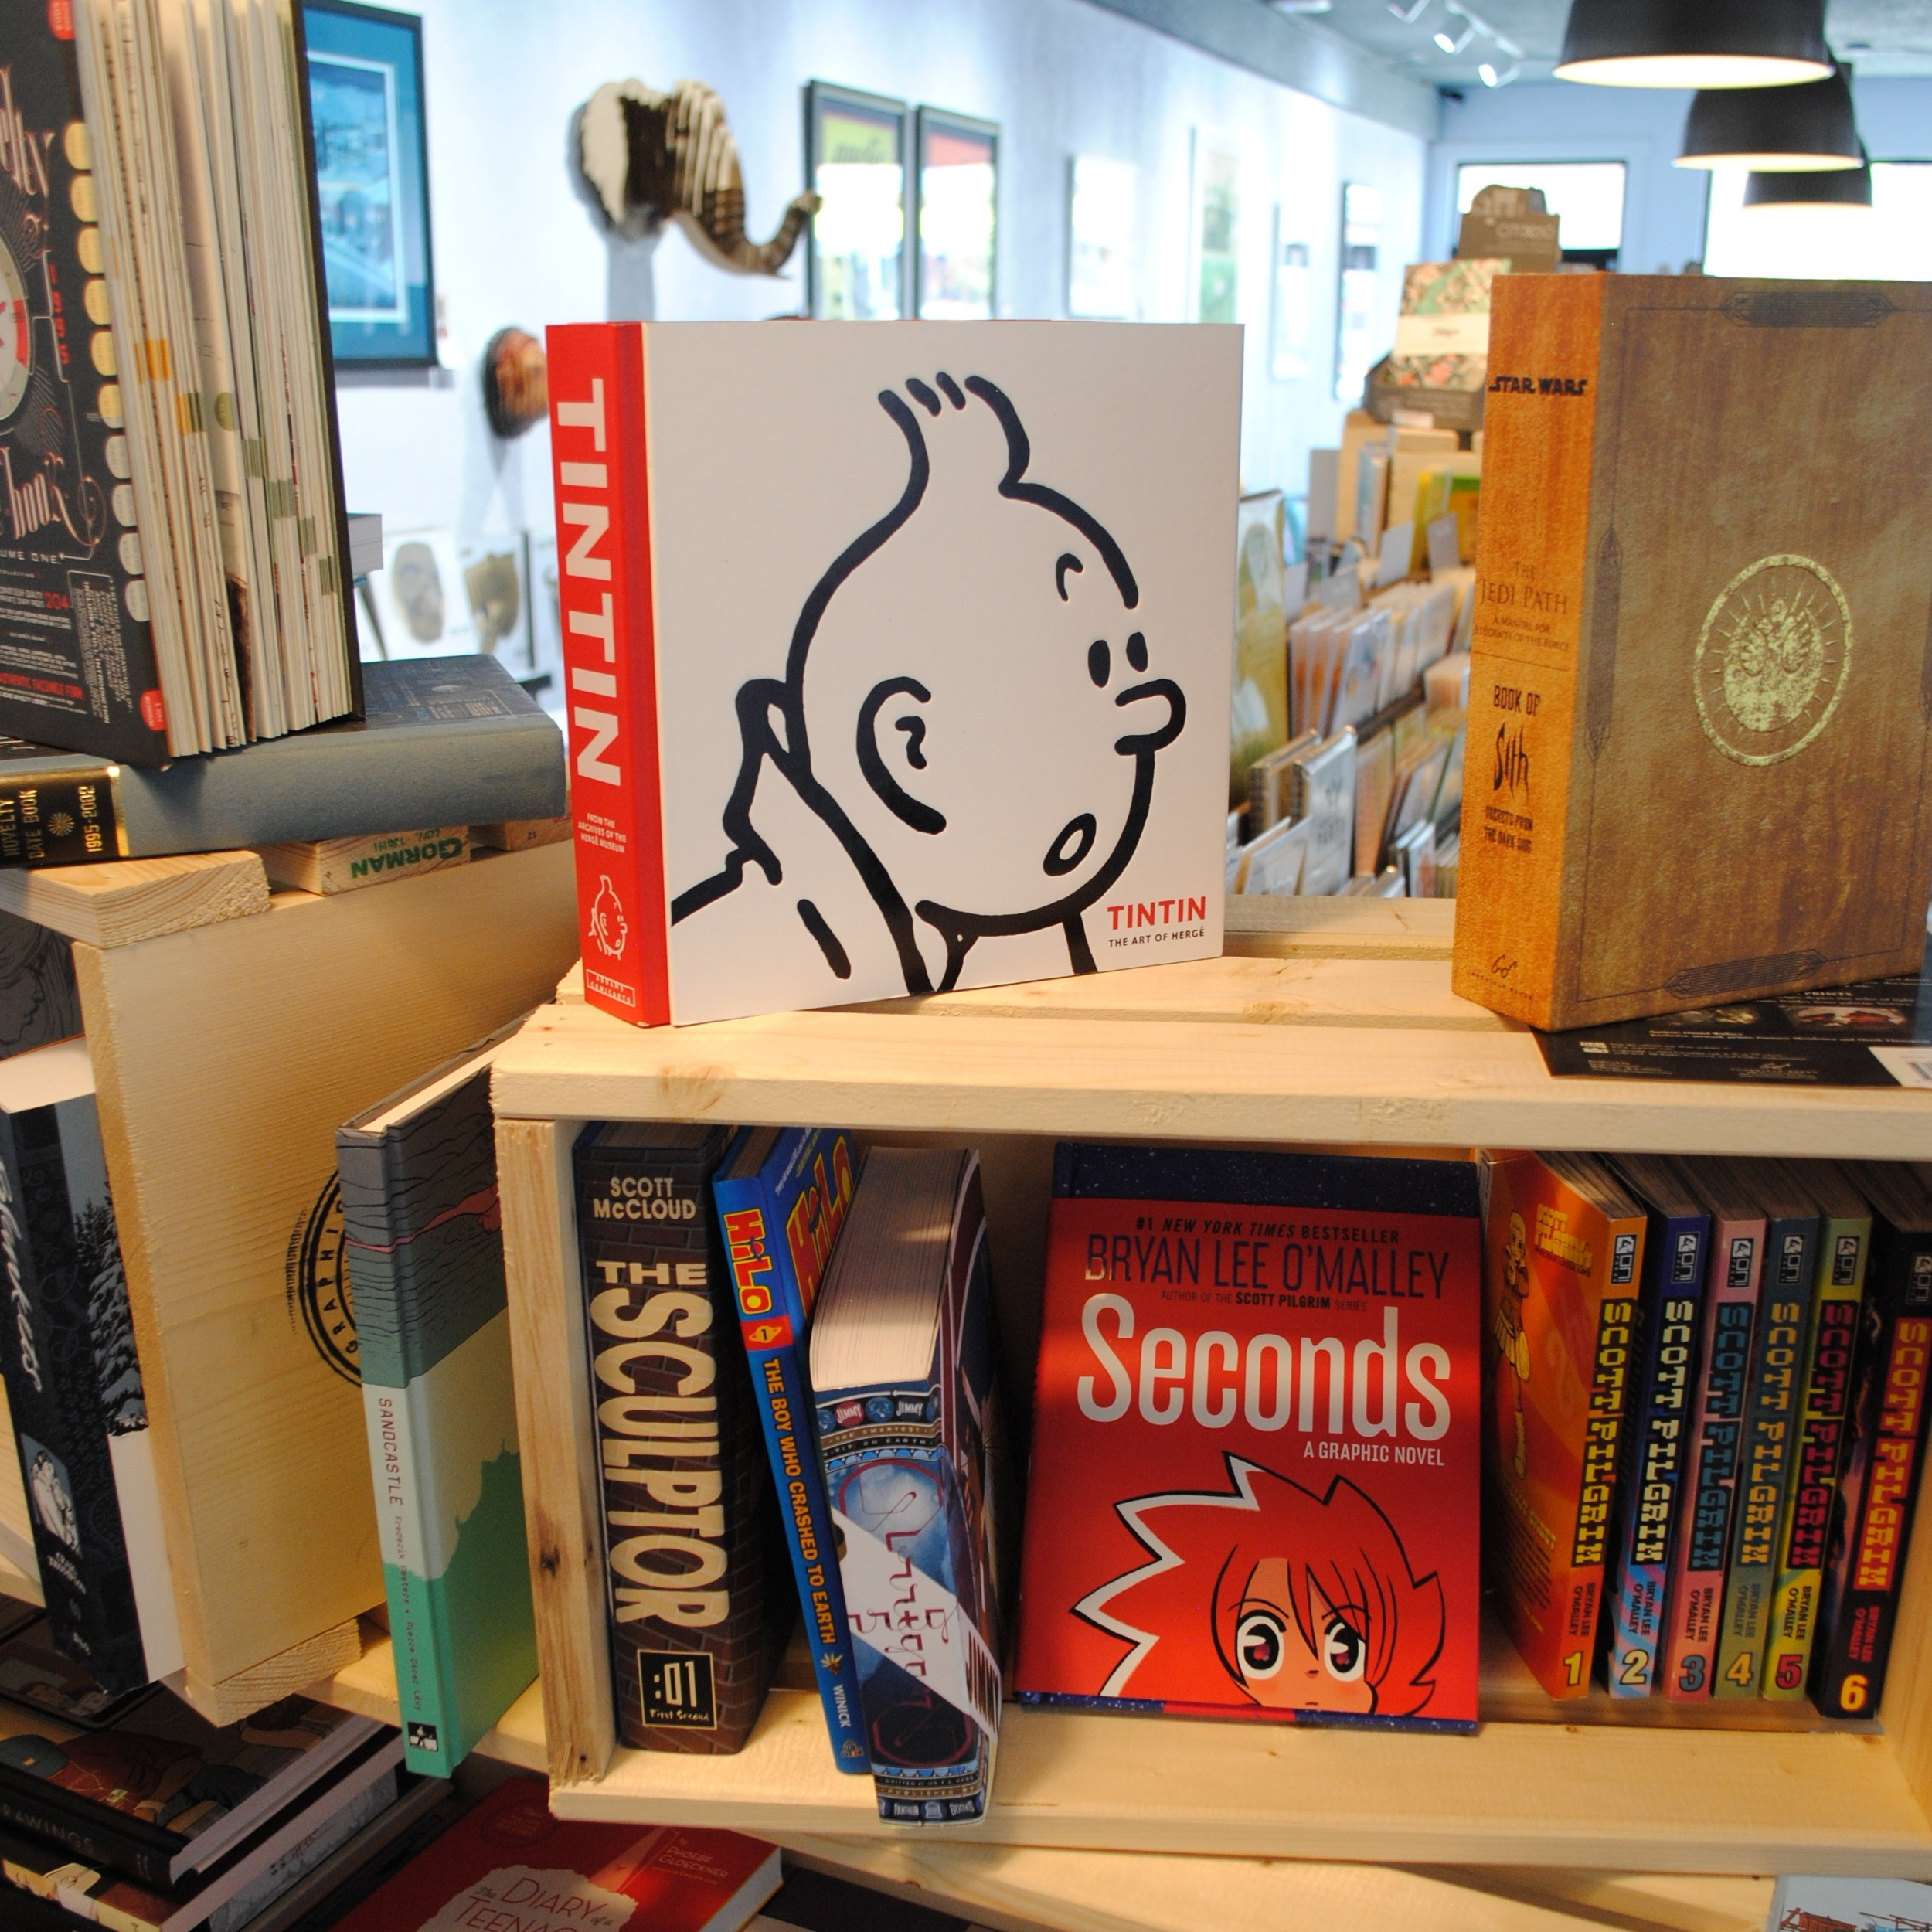 Graphic Novels at The Prints and the Paper in Edmonton on 124 street